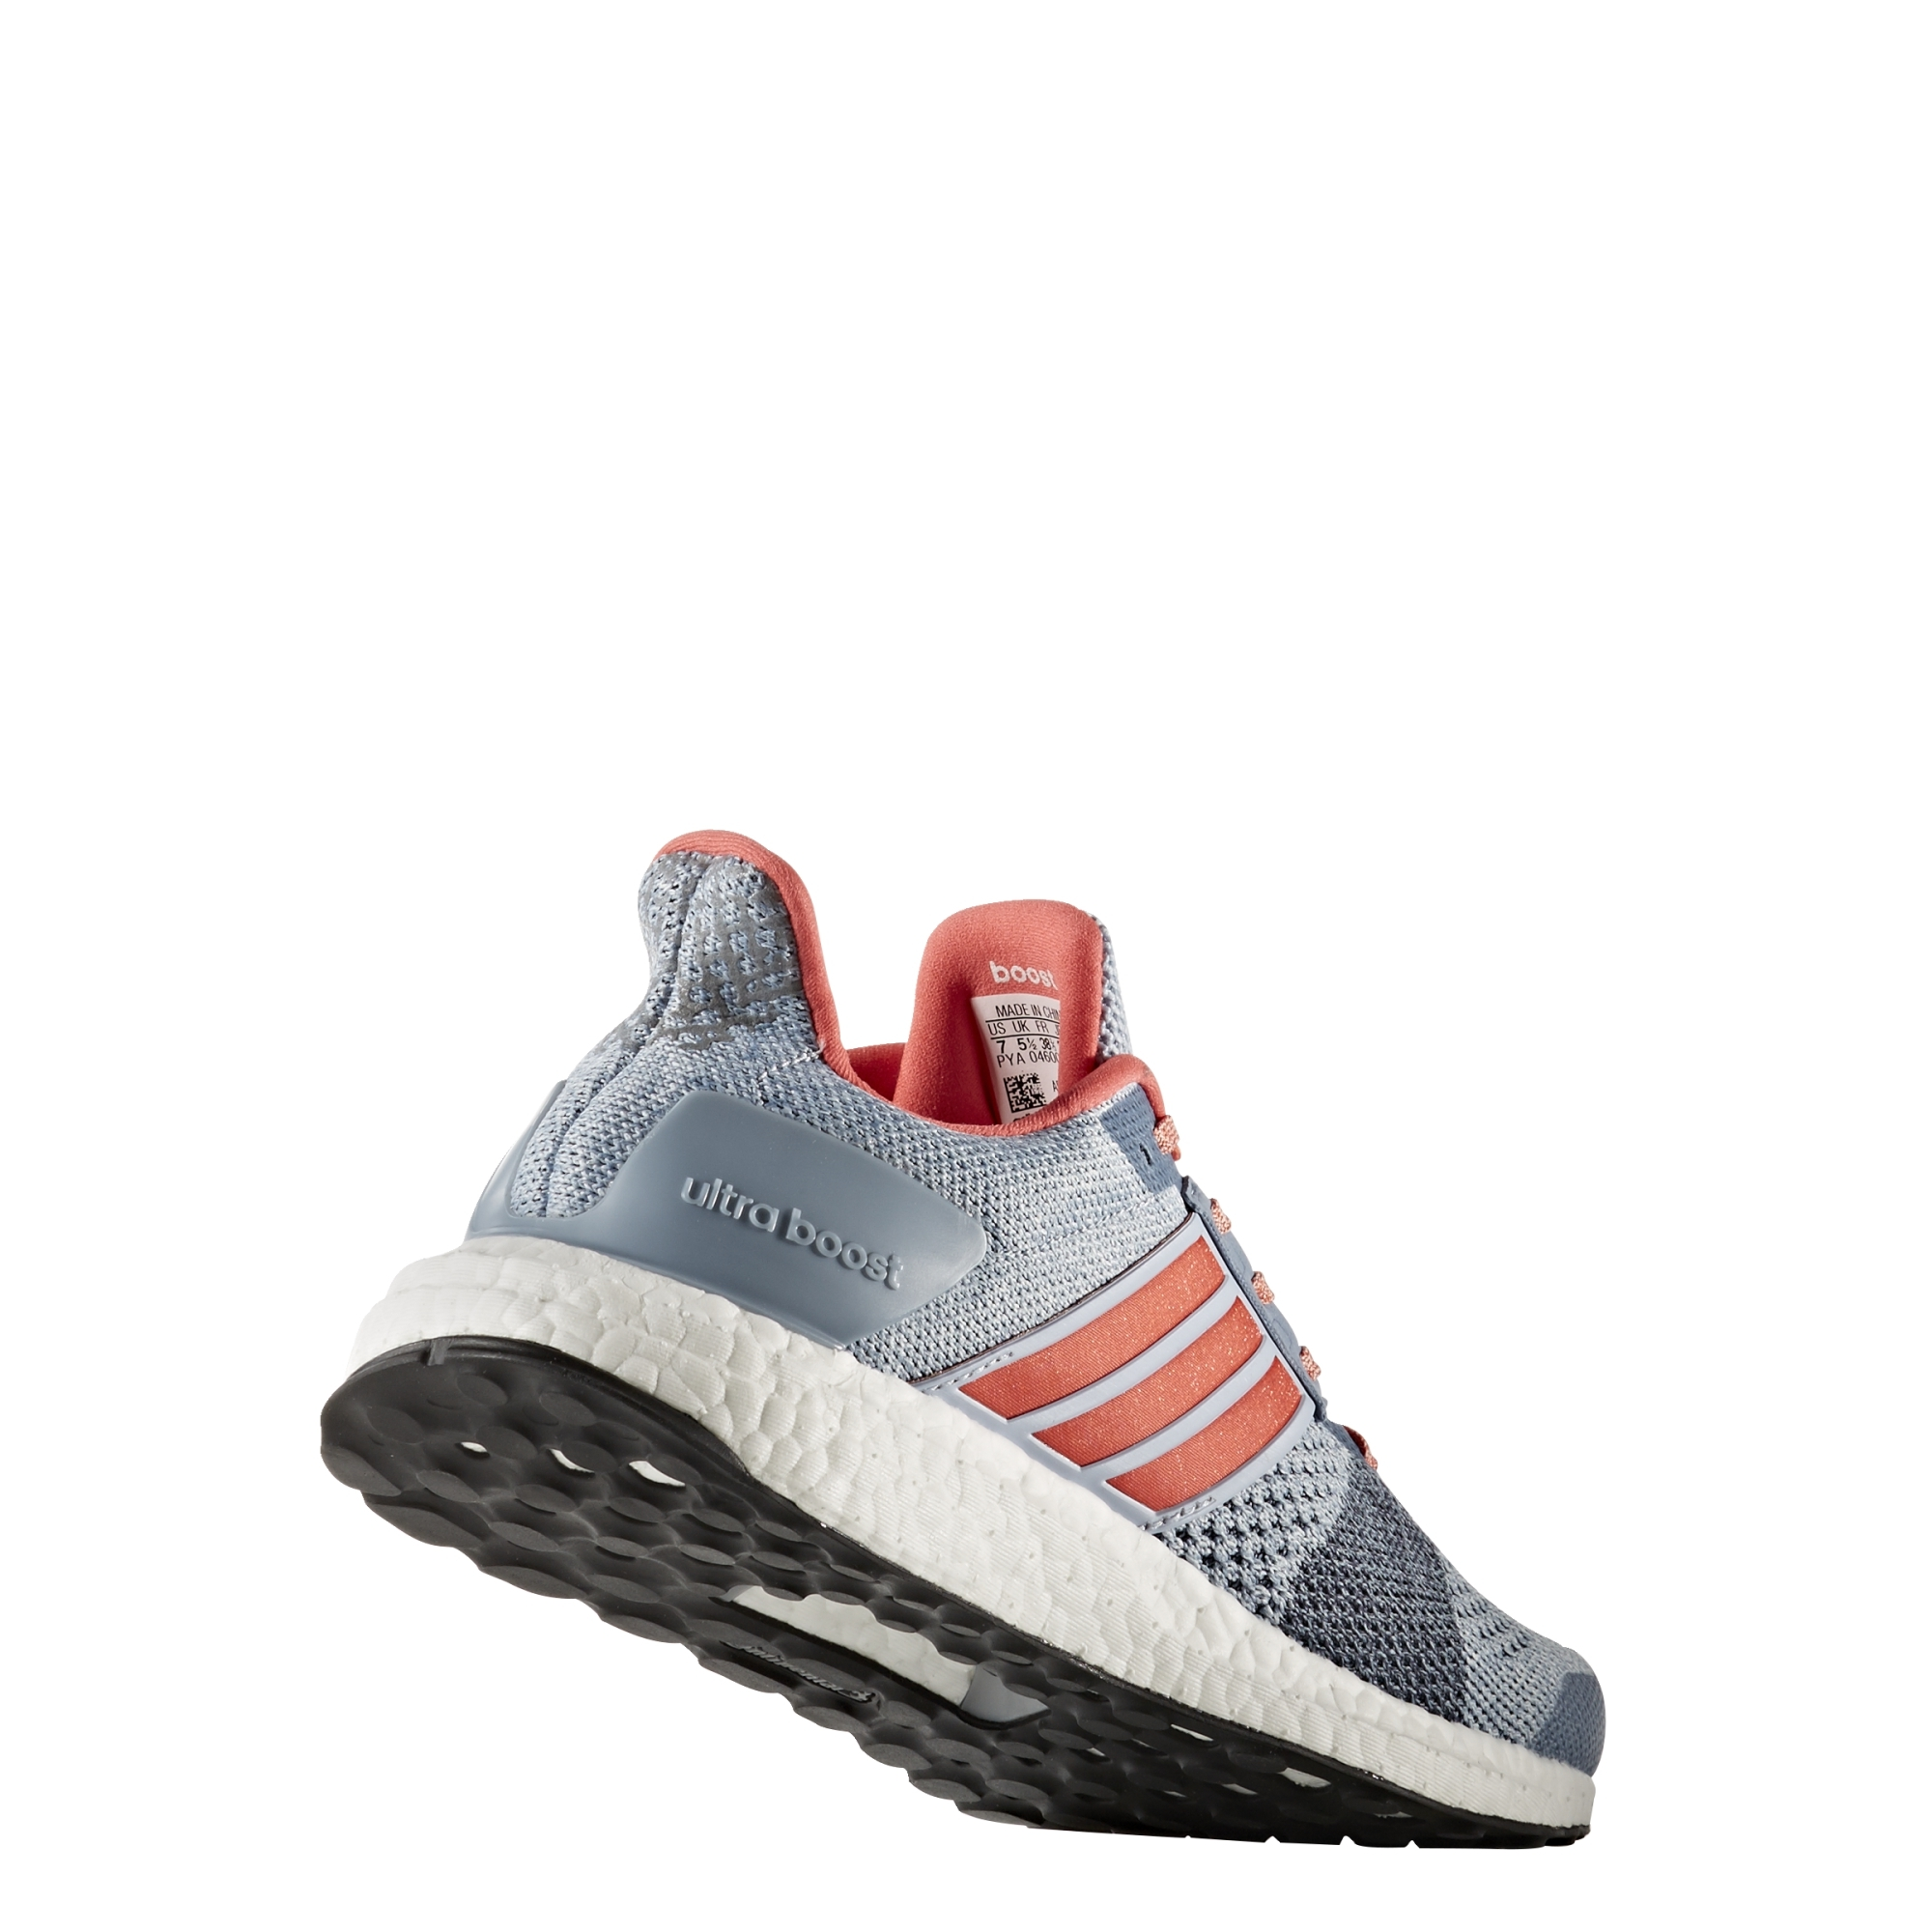 Adidas UltraBoost ST Womens Running Shoes - Alton Sports